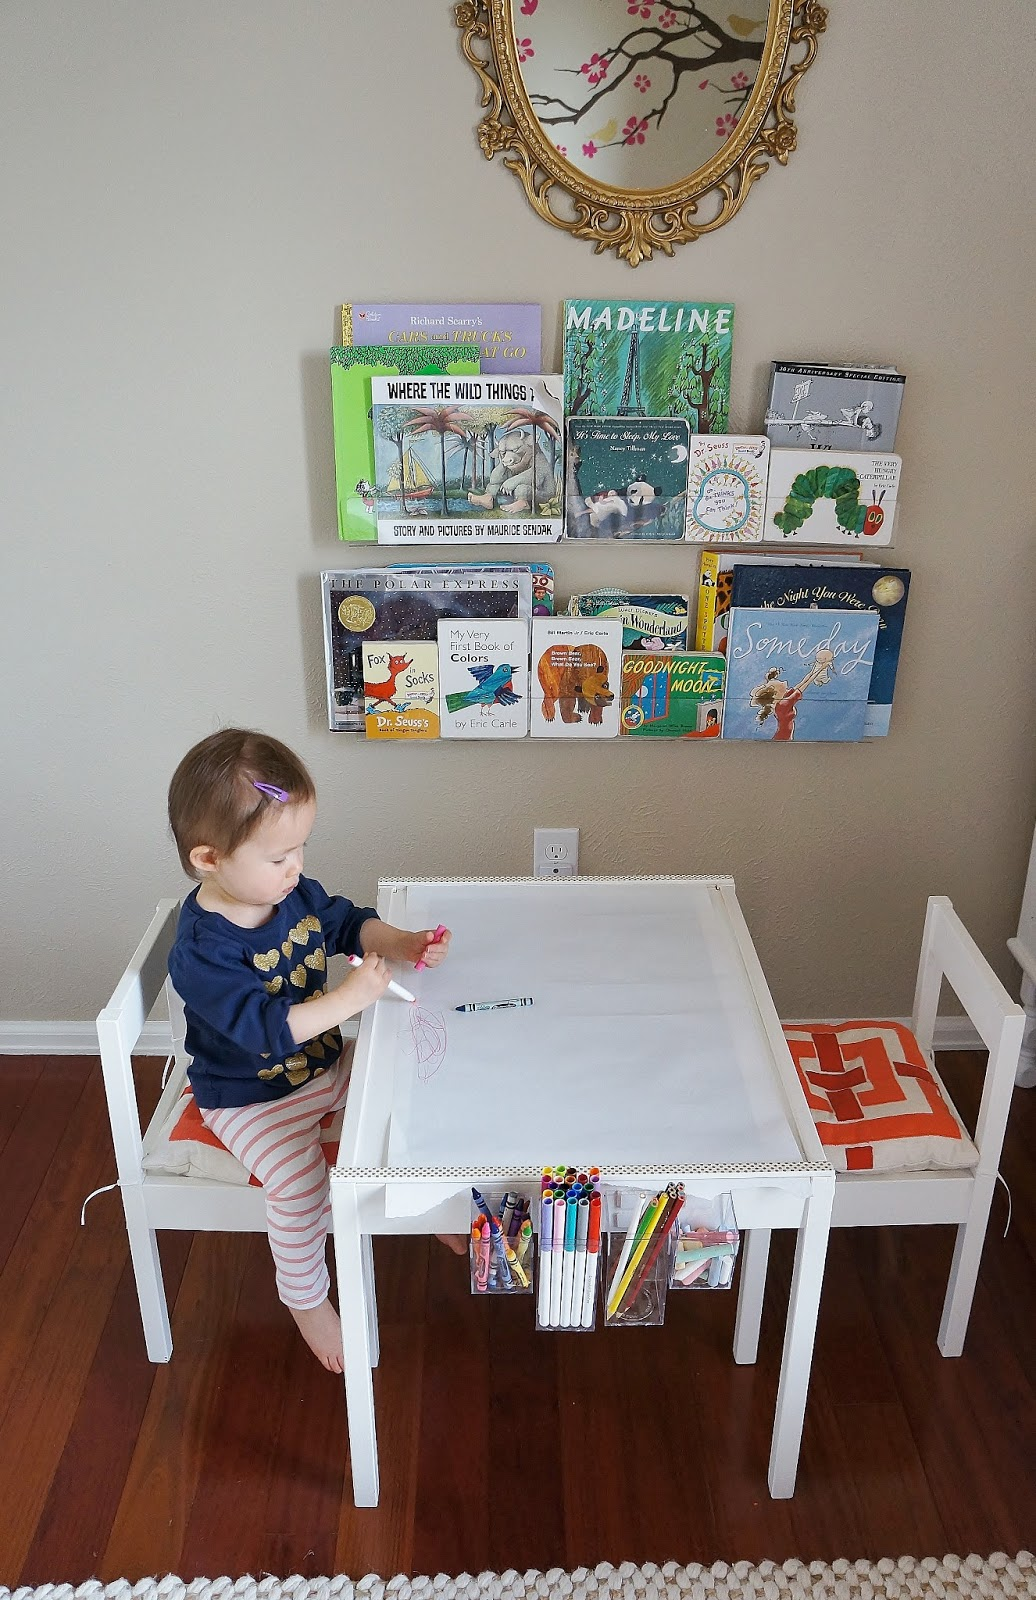 ikea kids table and chairs lift chair for stairs freckles chick quinn s art an latt hack clear acrylic book ledges are from here we have the 24 inchers